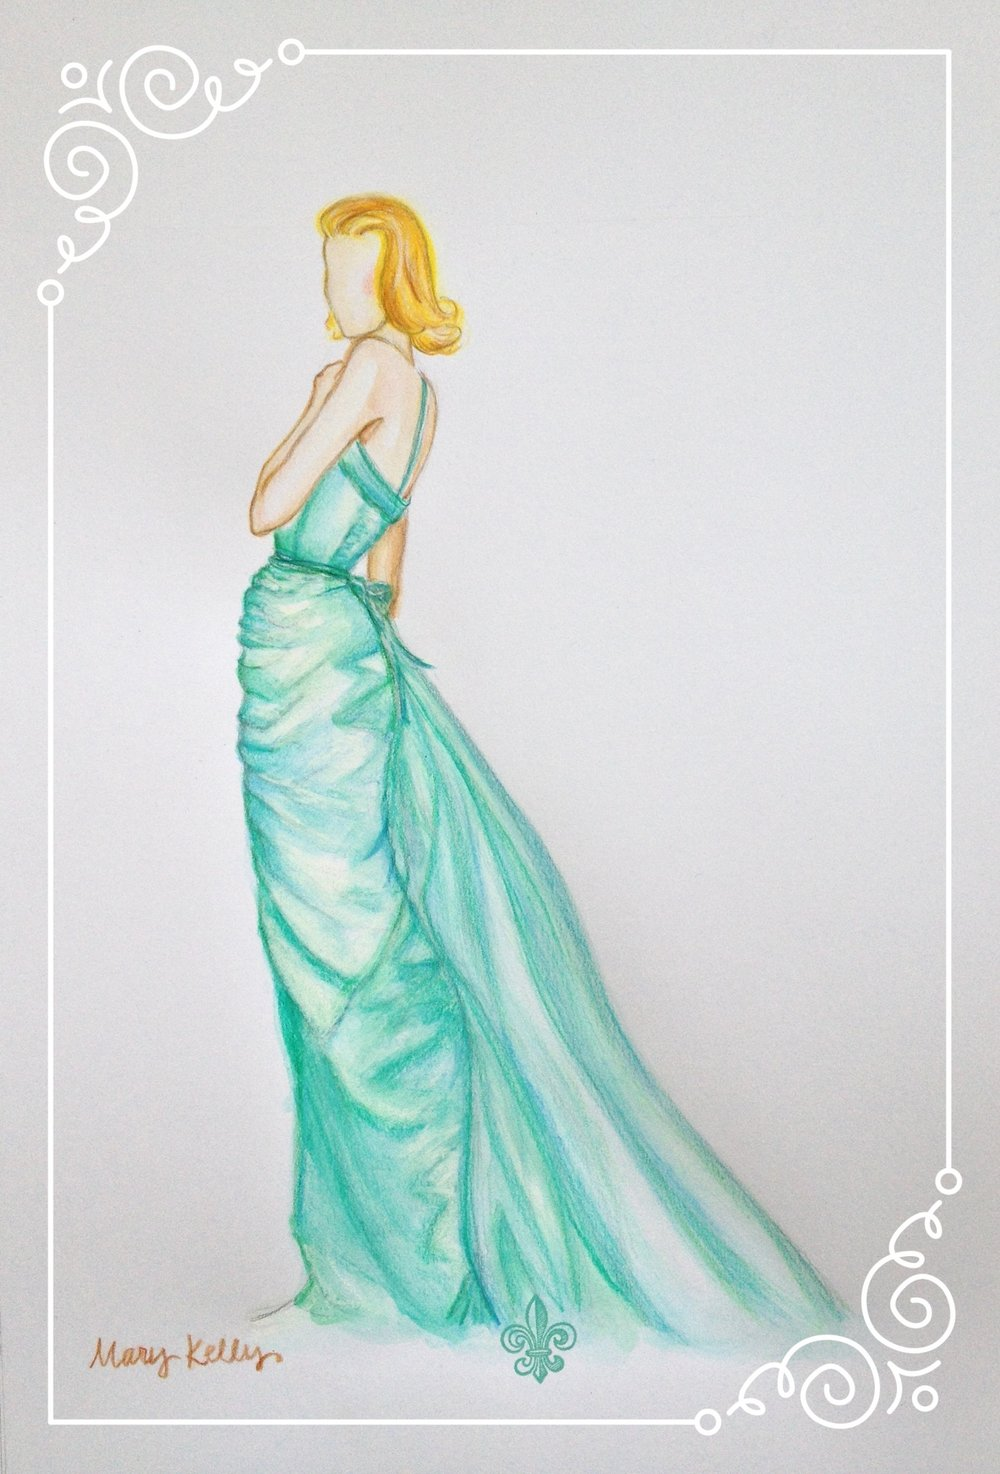 grace's academy award gown, mary kelly designs © 2018